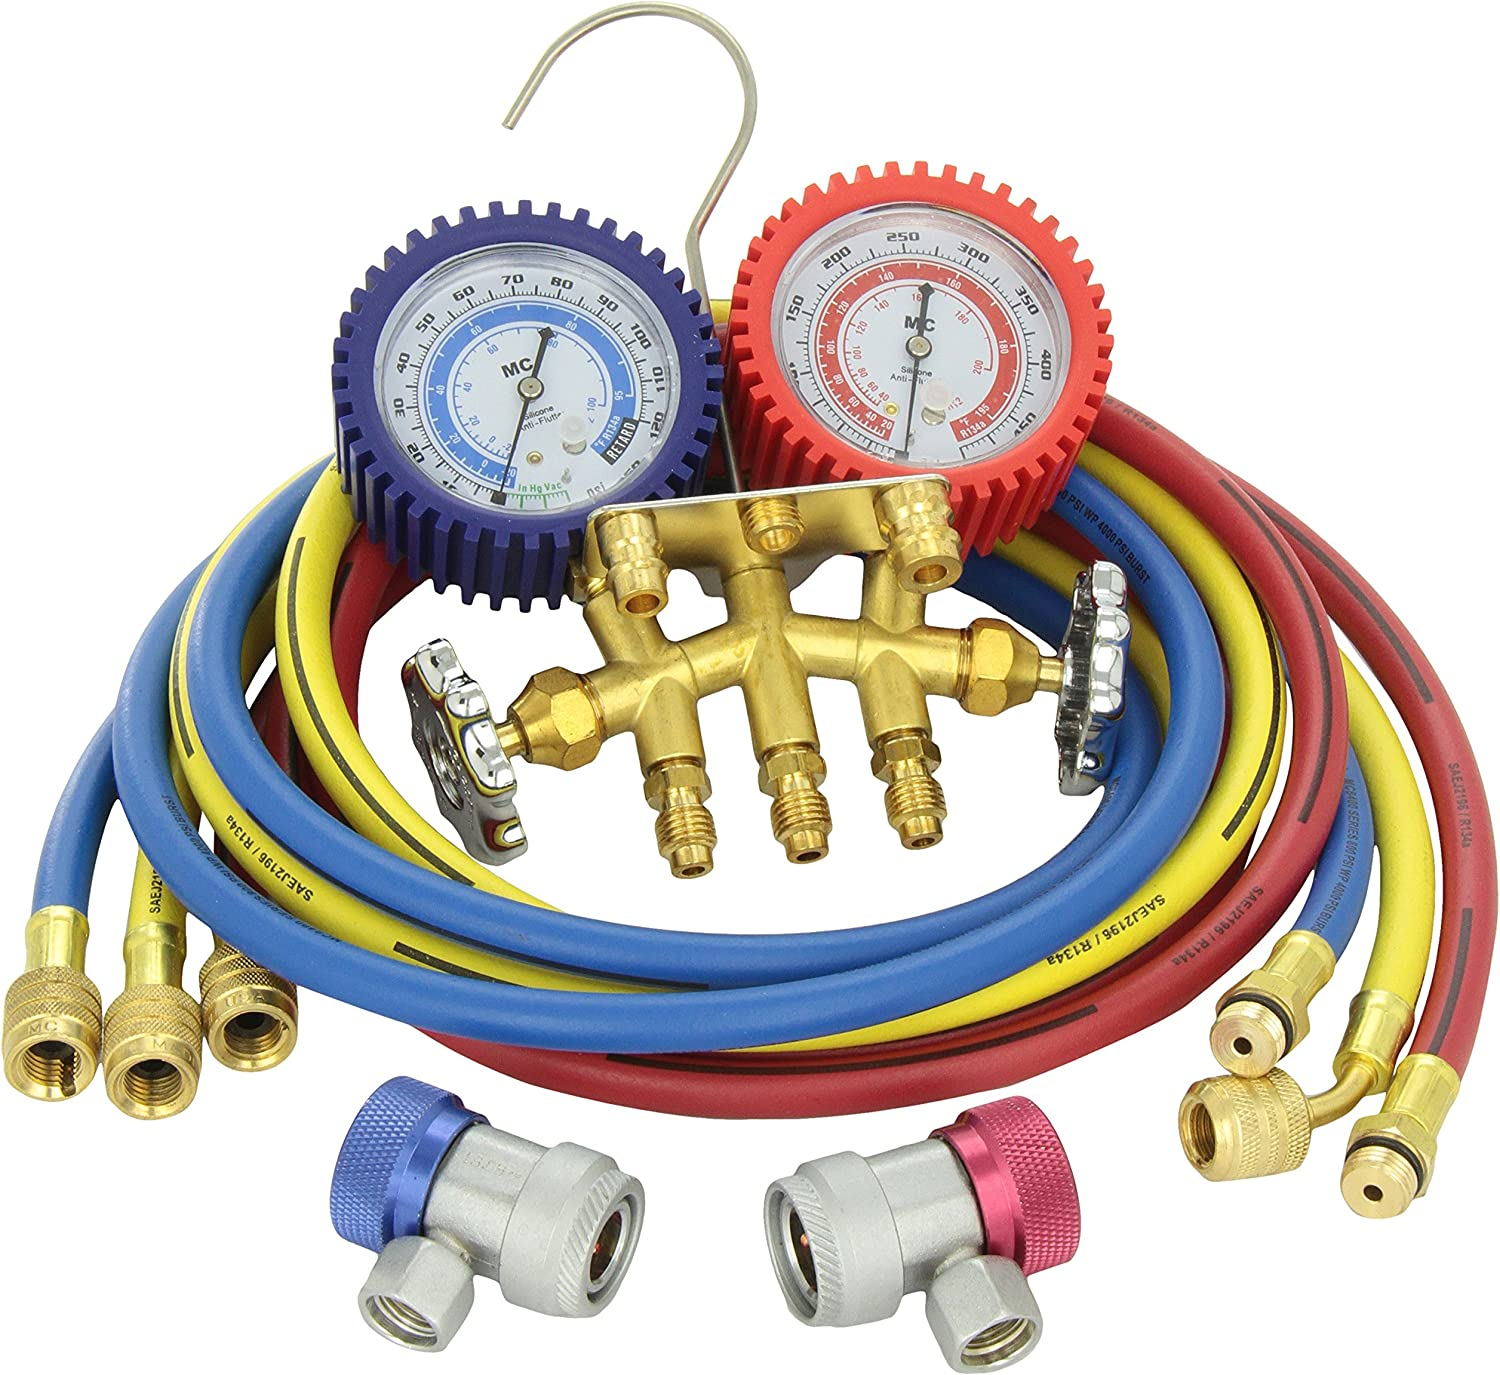 Hoses MASTERCOOL 84772G Brass R134A 2 Way Manifold Gauge Set with 72in